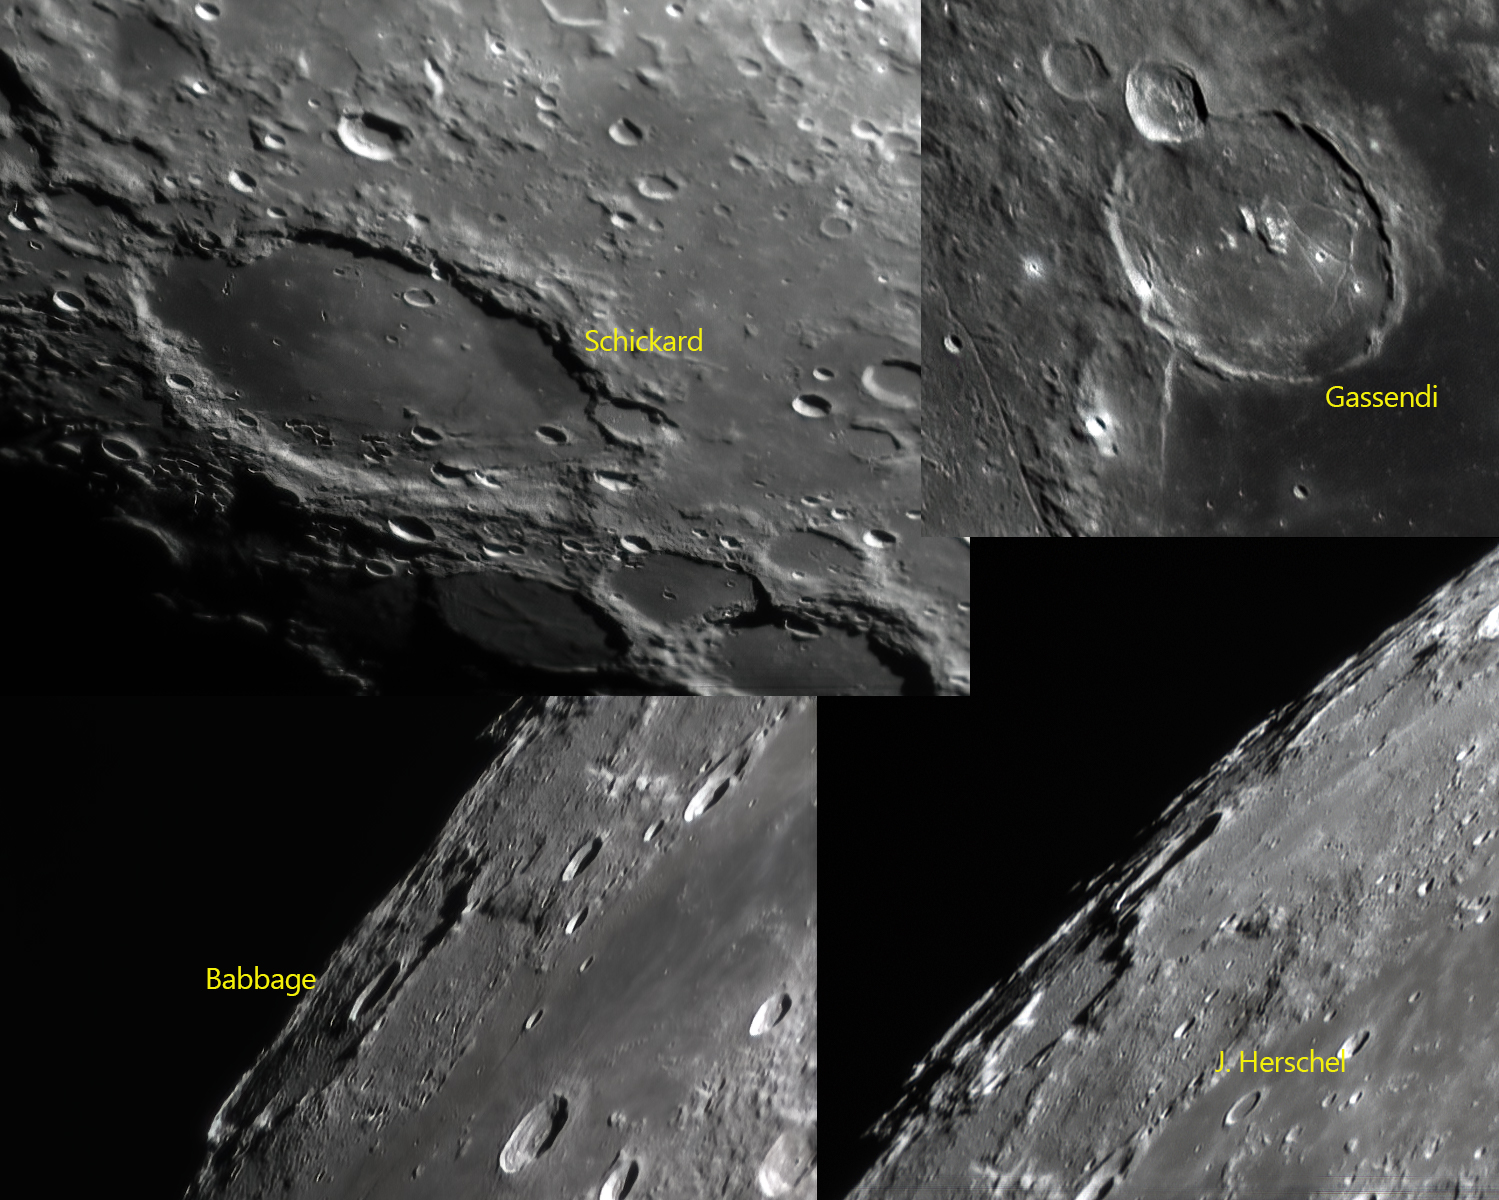 More lunar features for the ASE Lunar-100